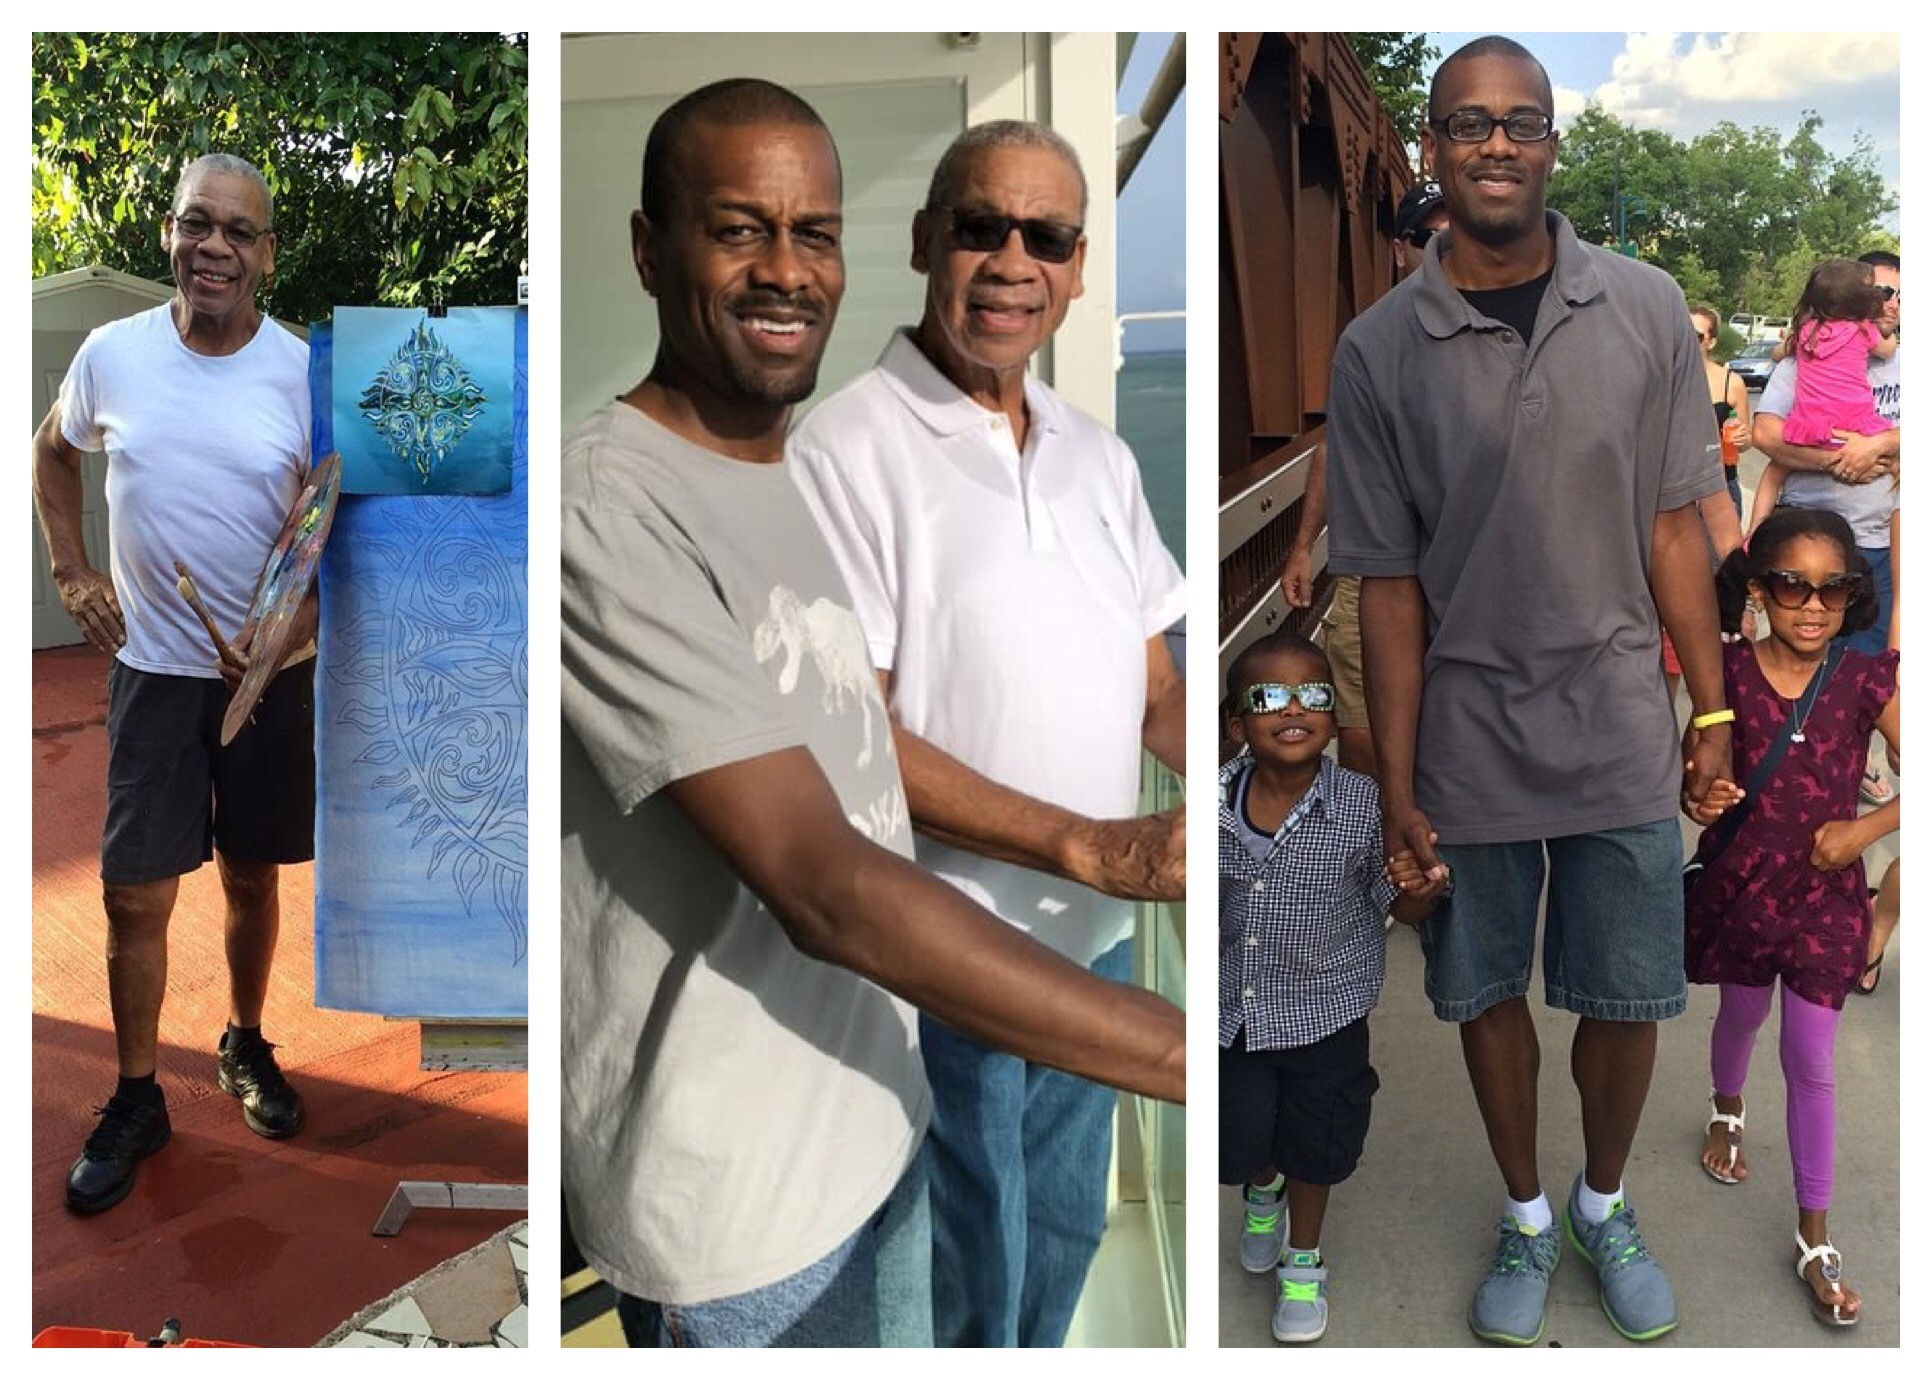 My husband Lucious has all of the best qualities of my Daddy. They both are fun, loving and super engaged dads!